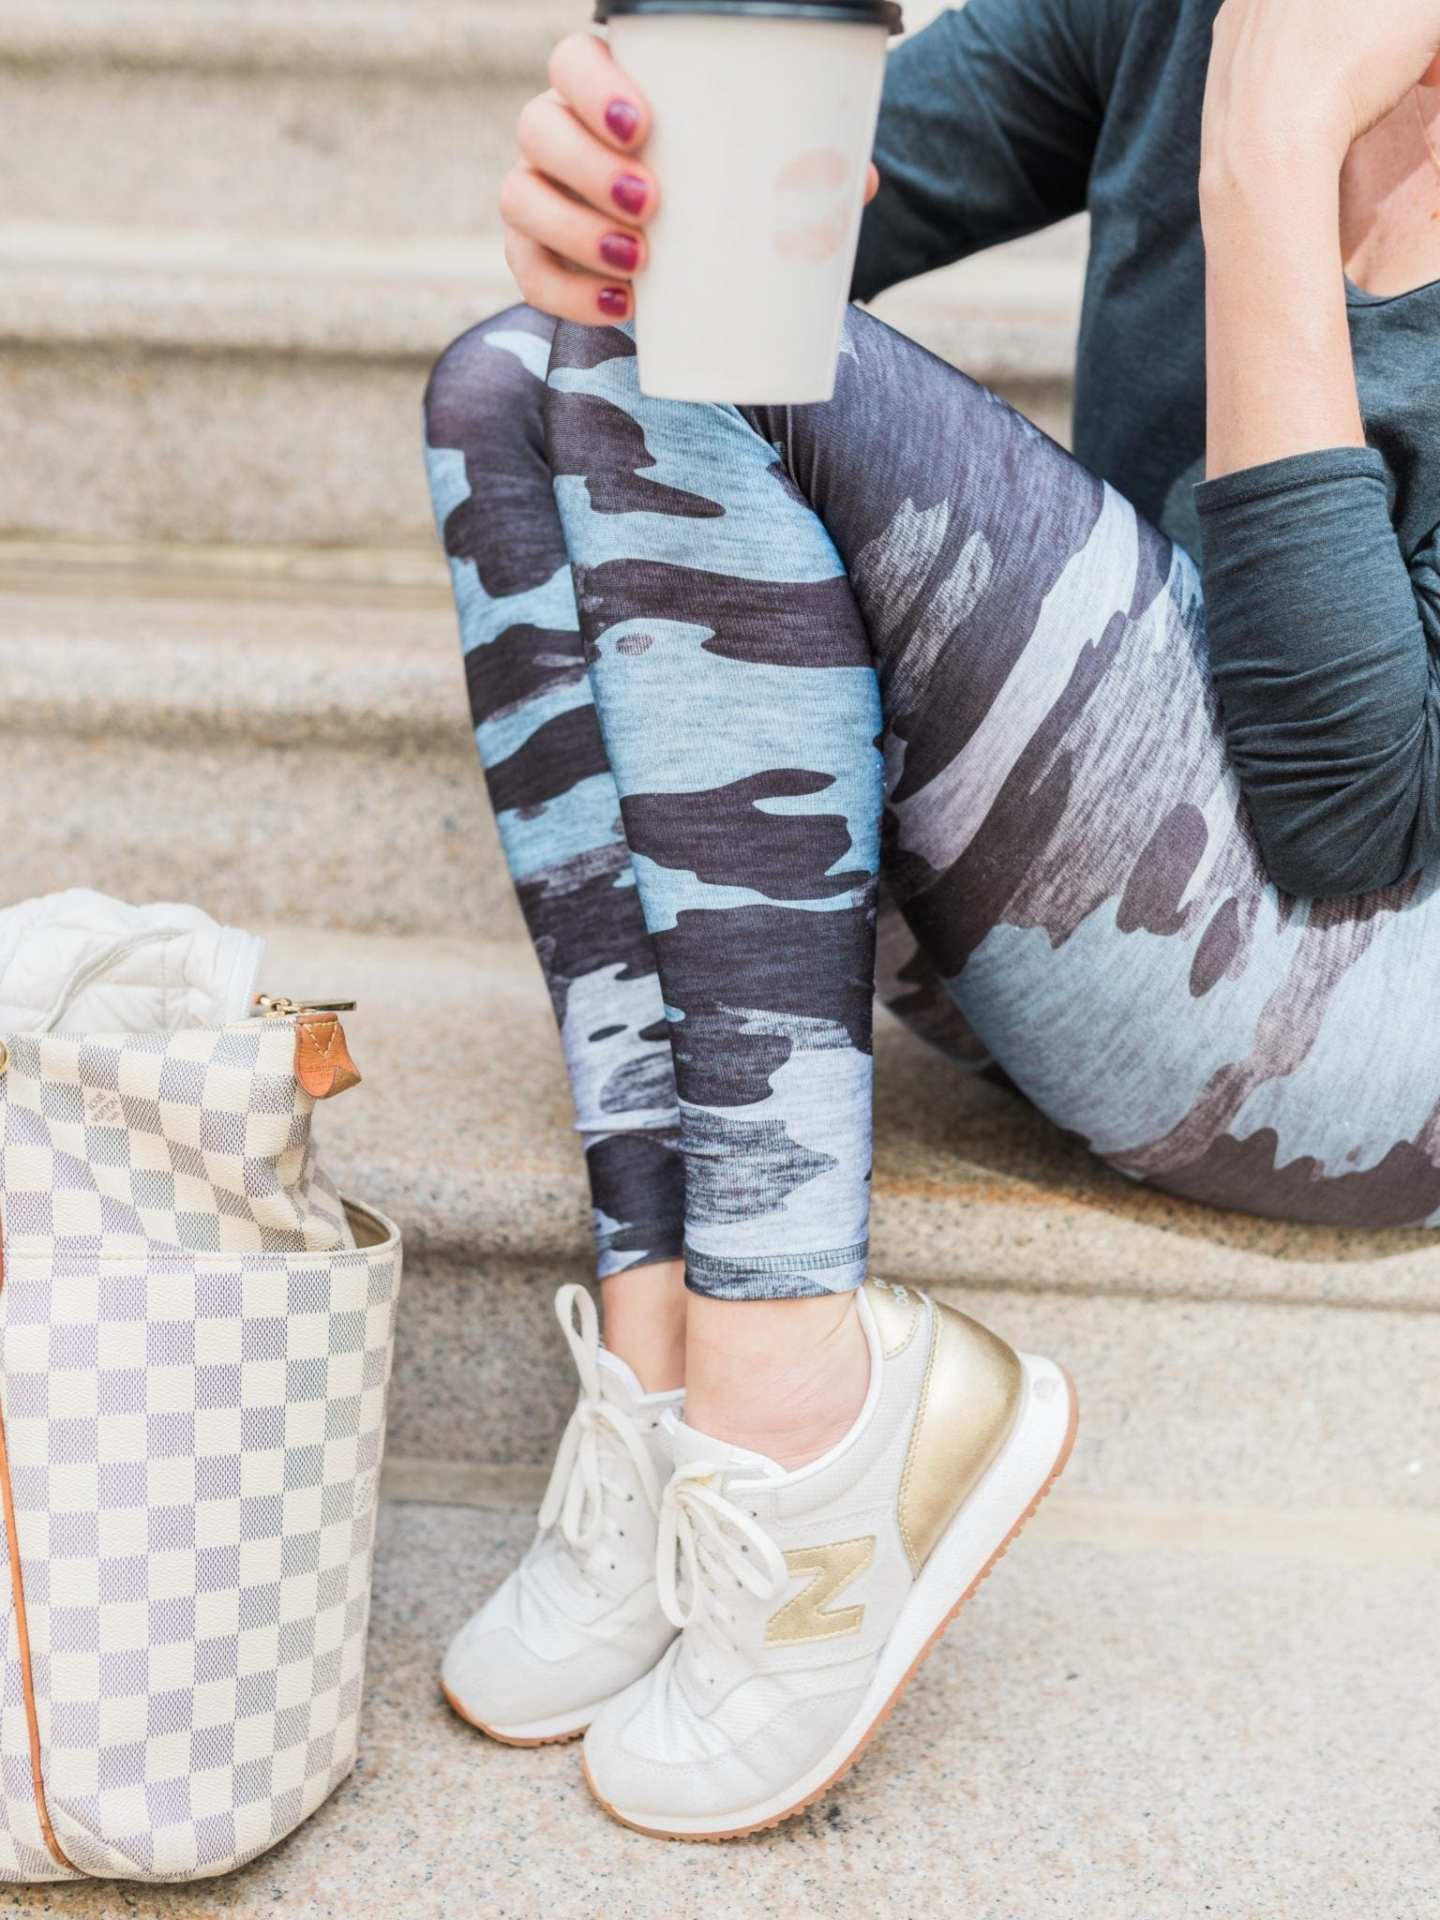 New Balance White and Gold Sneakers and blue camouflage leggings.